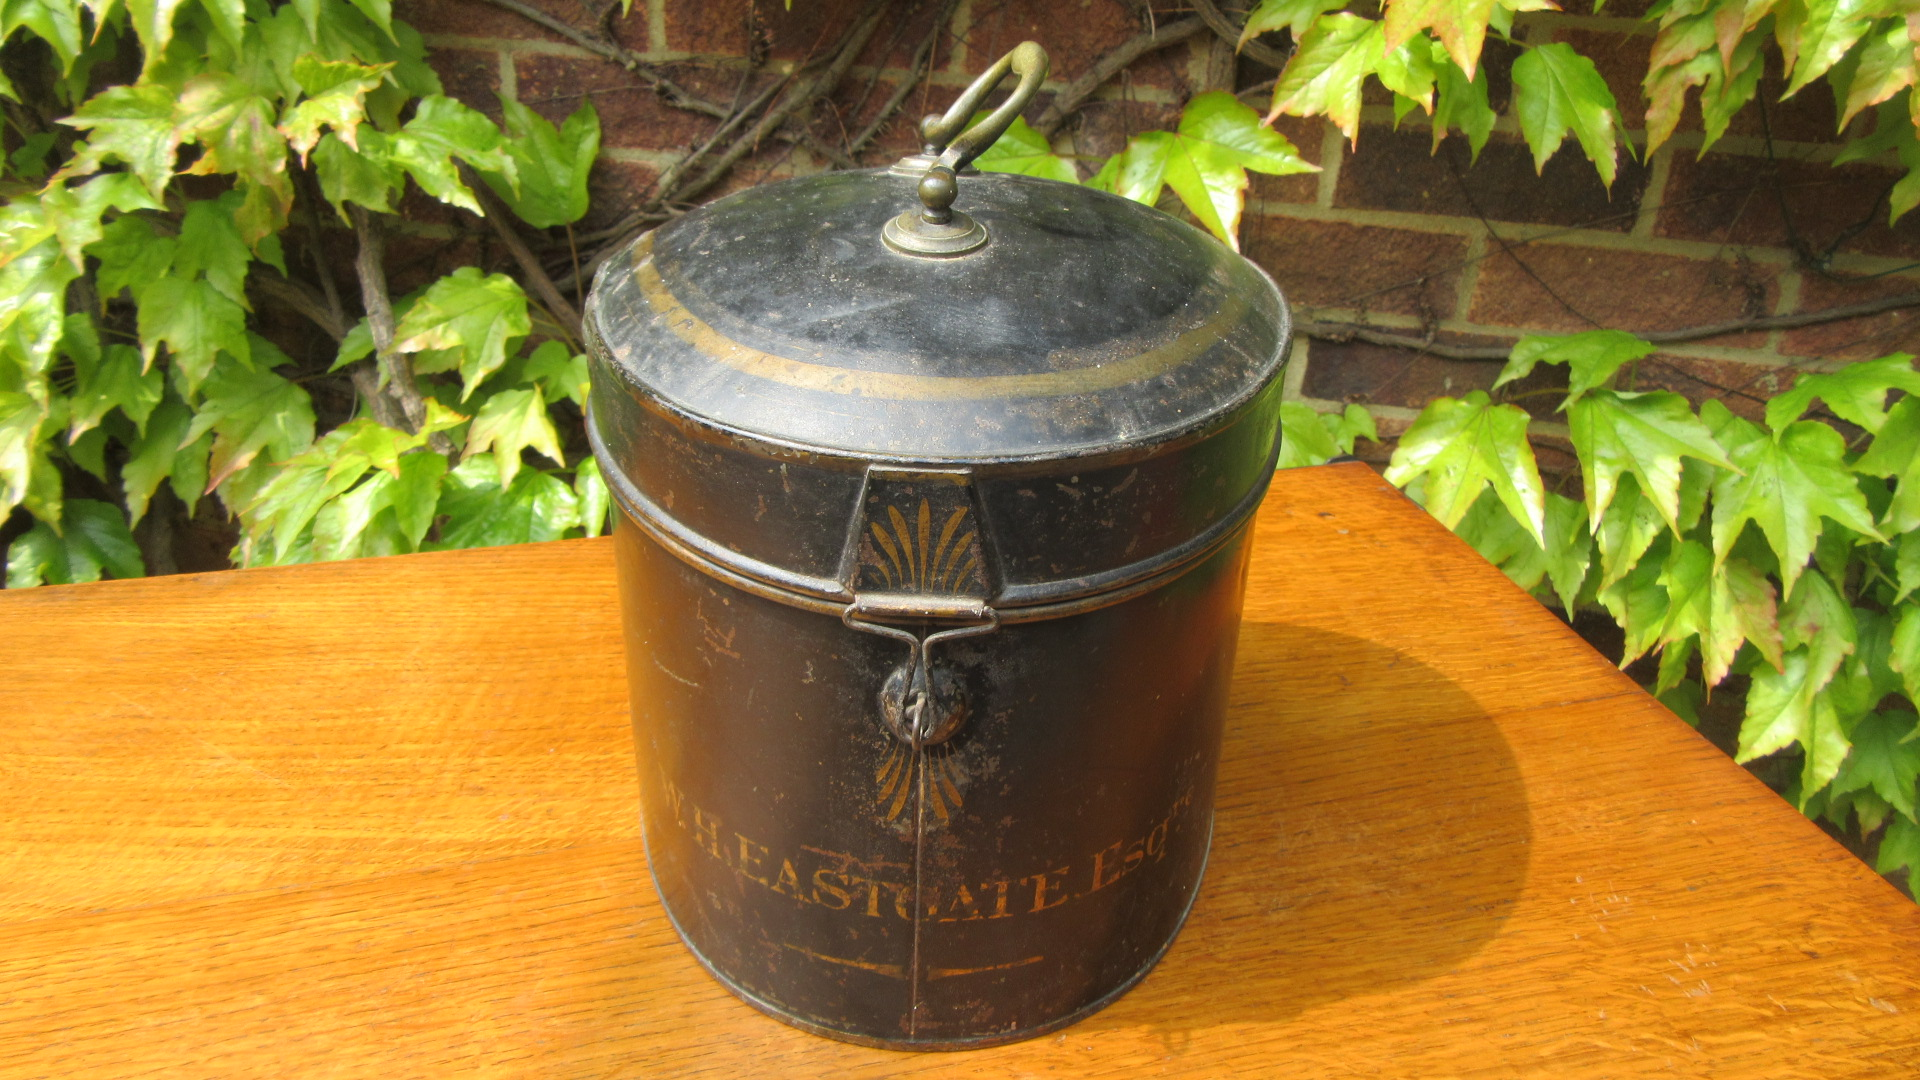 ANTIQUE BARRISTERS TOLE WARE WIG TIN